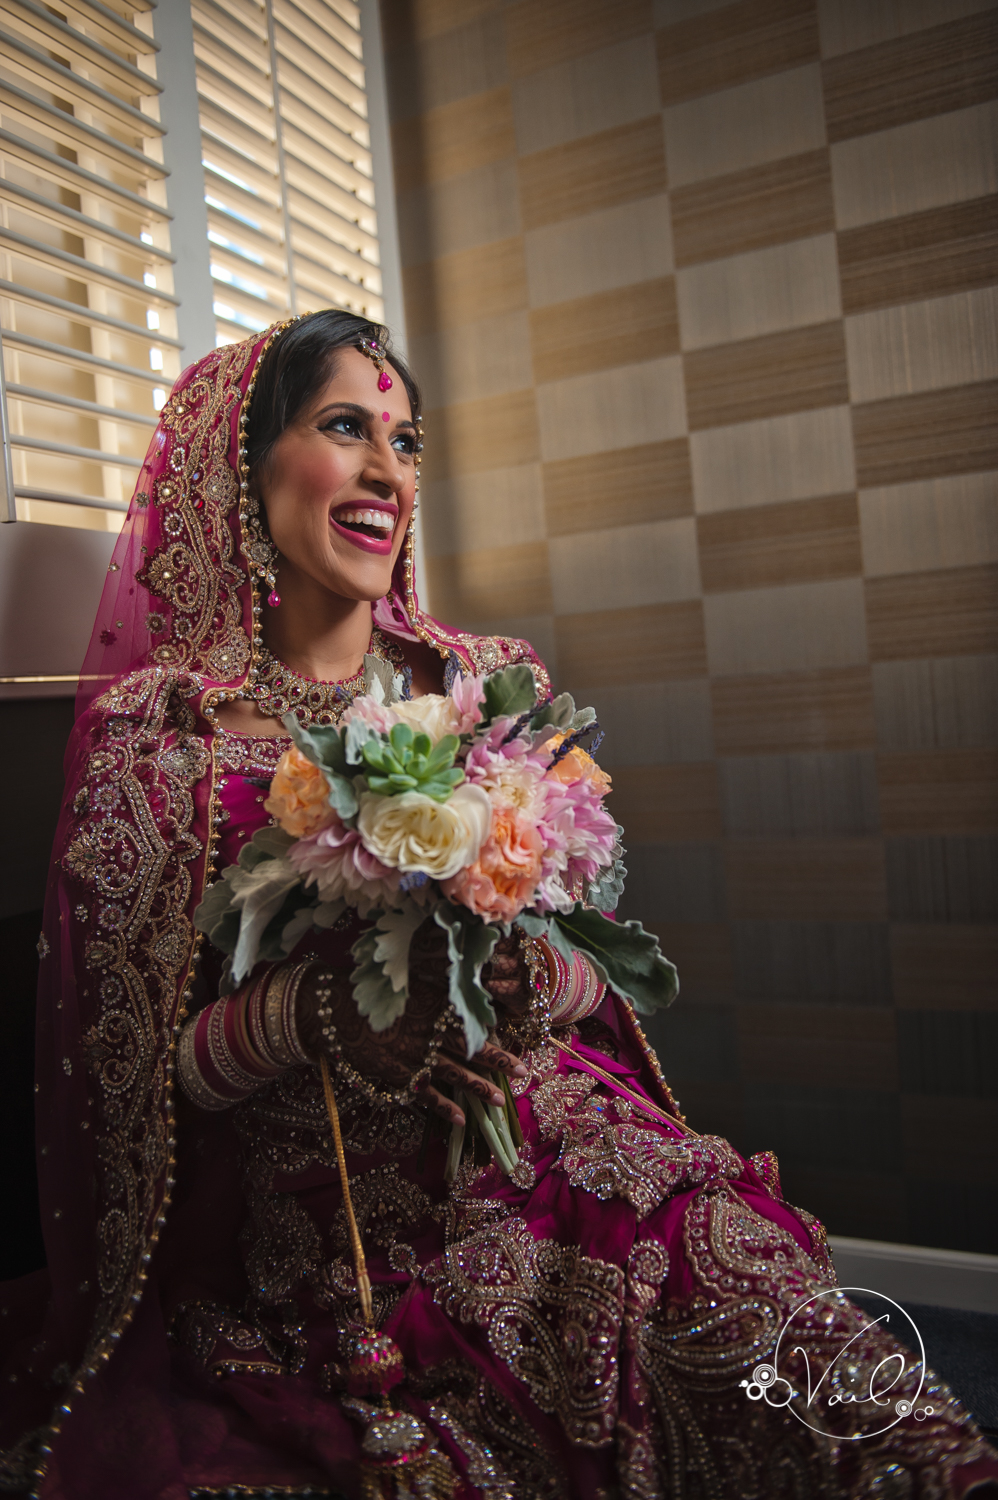 East indian wedding Within SODO Seattle-1.jpg